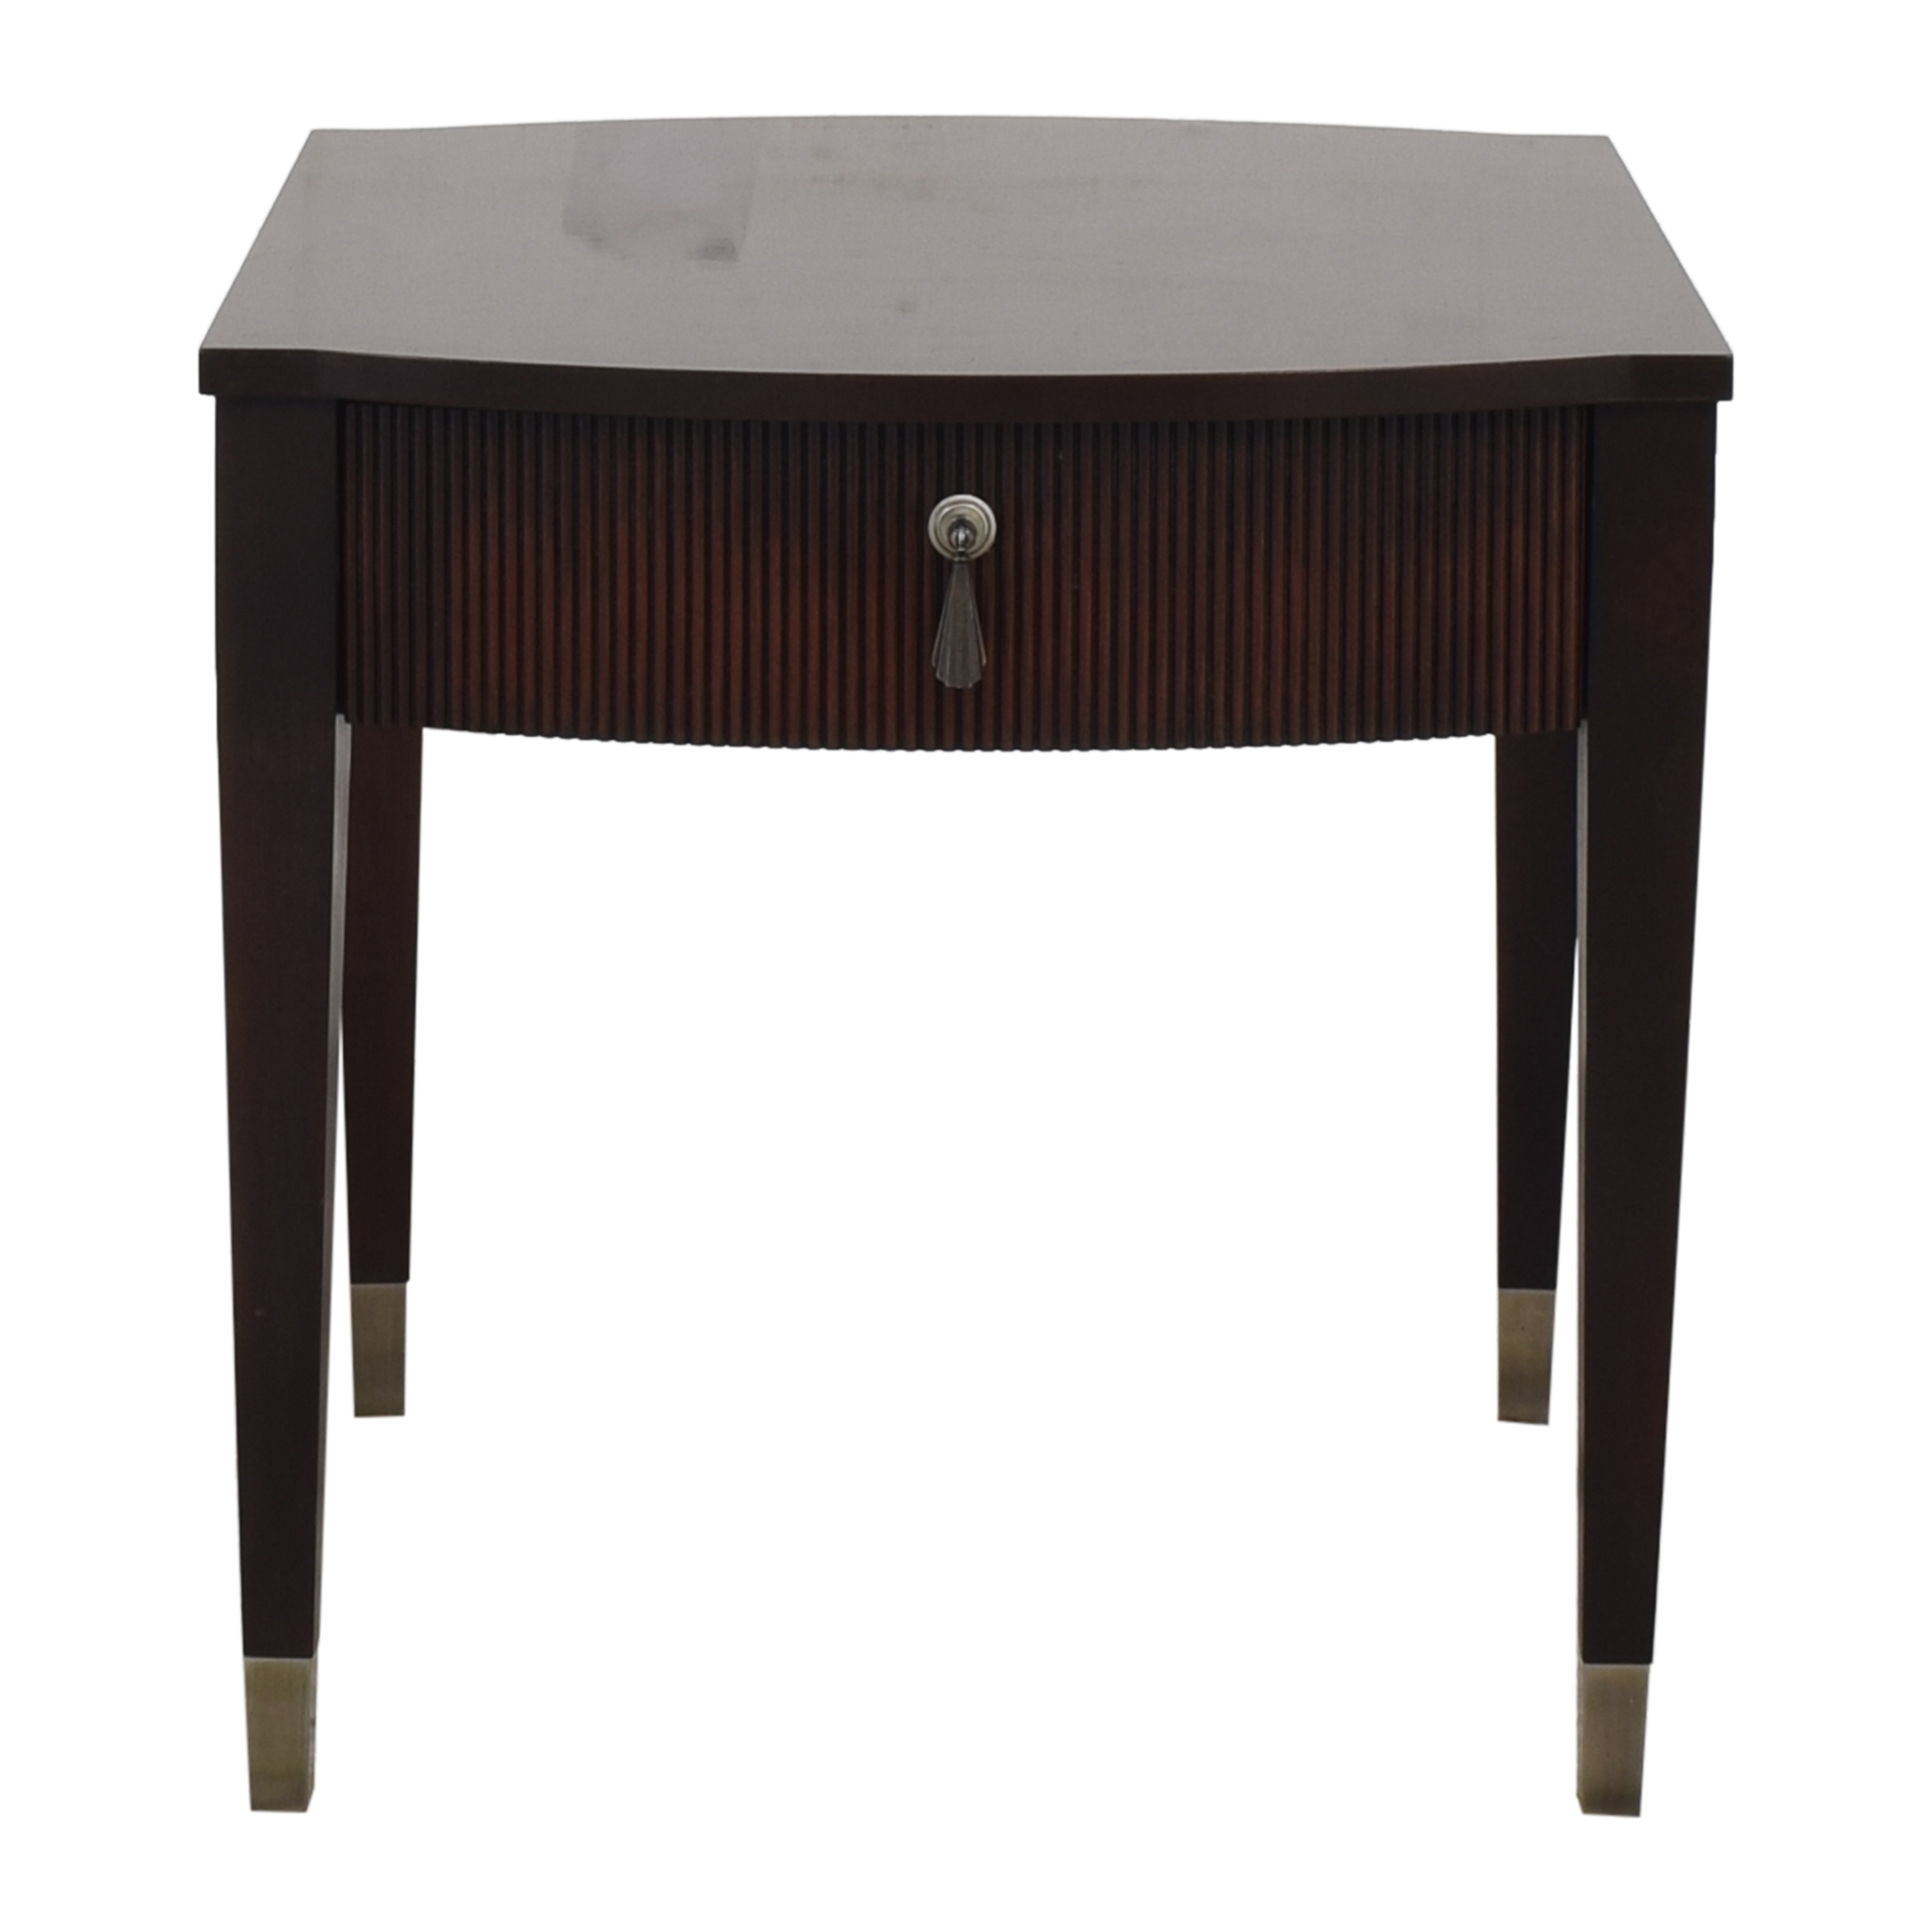 Ethan Allen Ethan Allen Avenue End Table ct